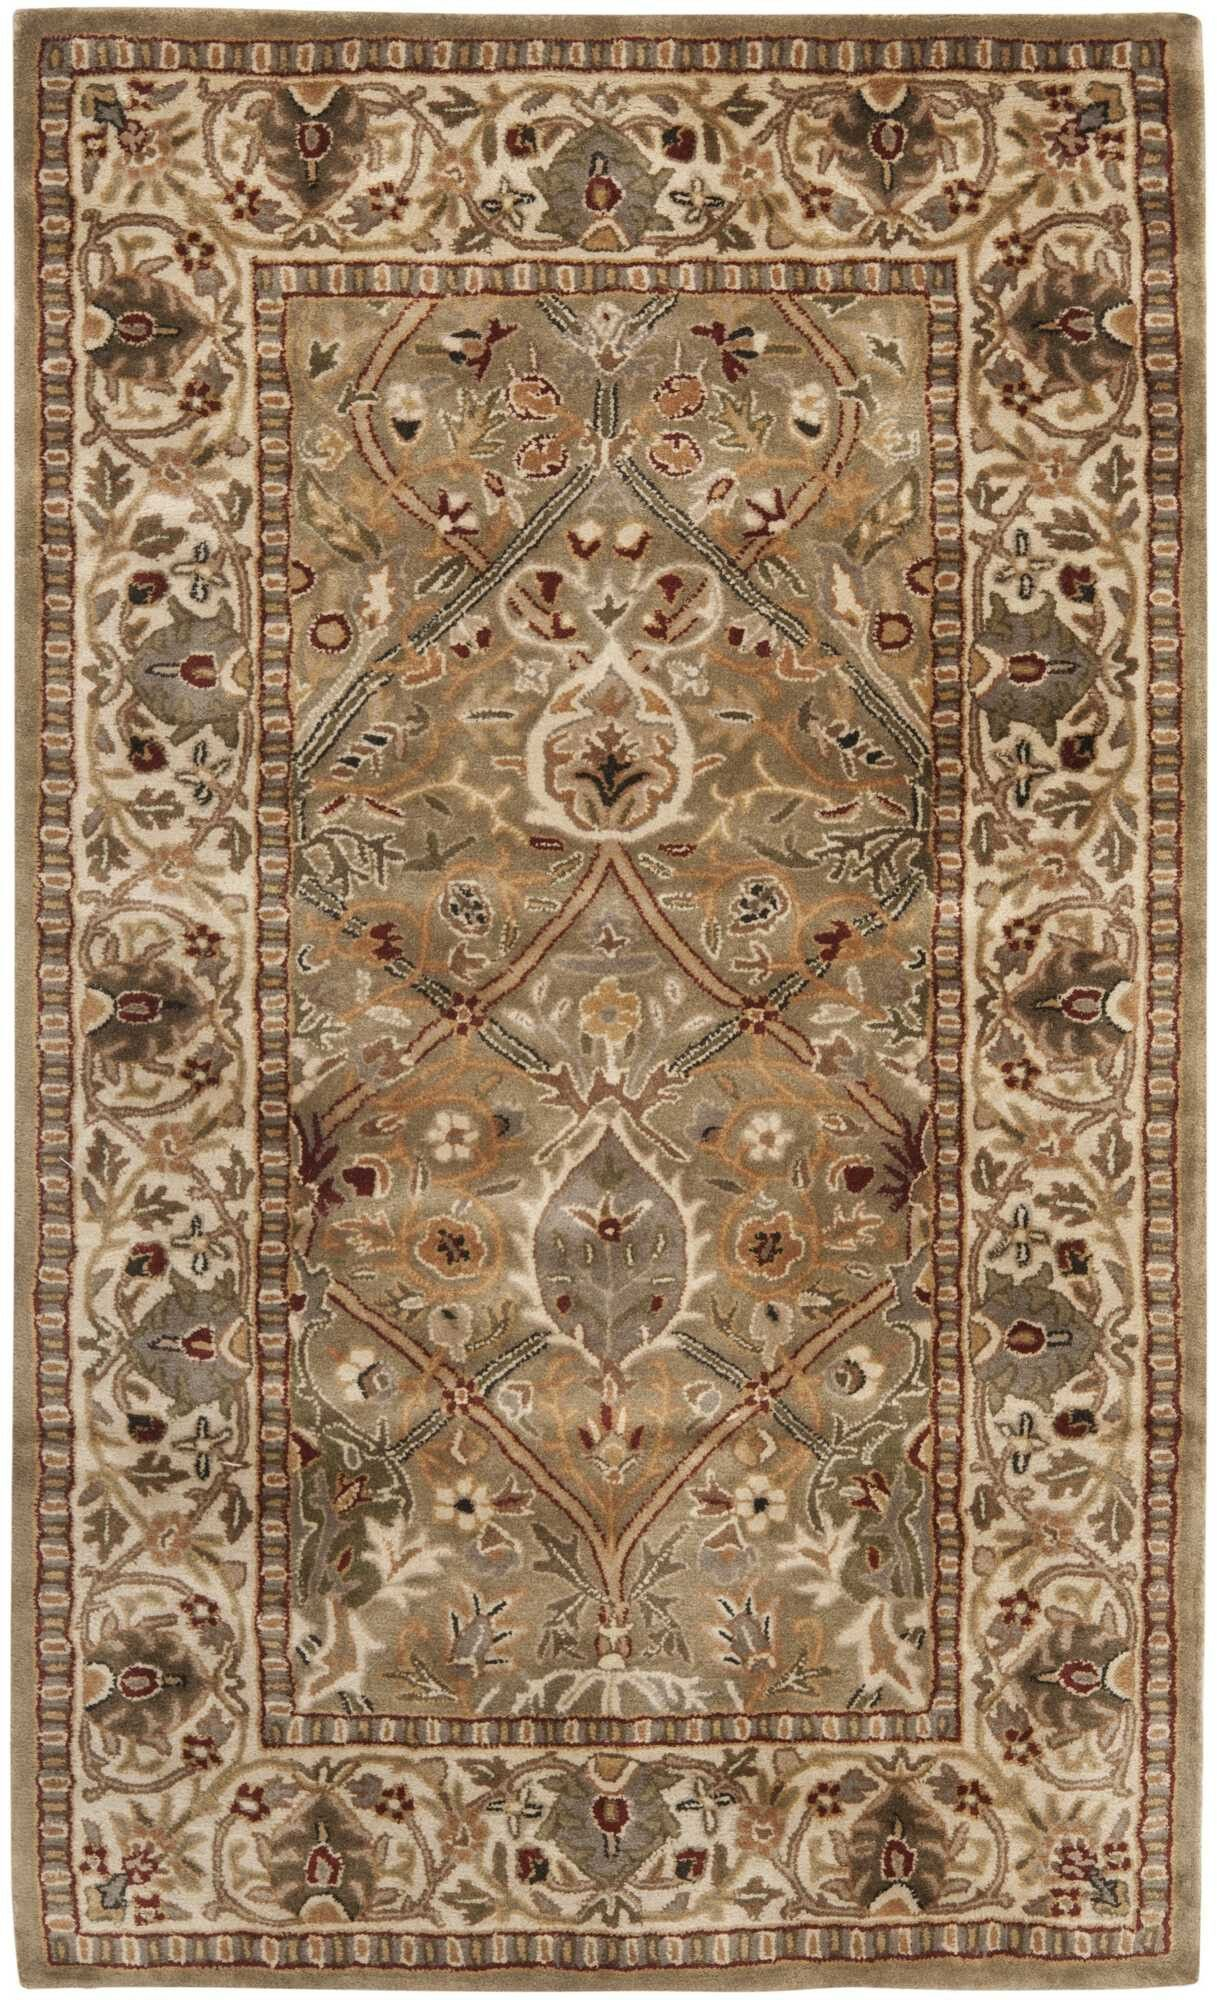 Safavieh Persian Legend PL519 Area Rug Safavieh